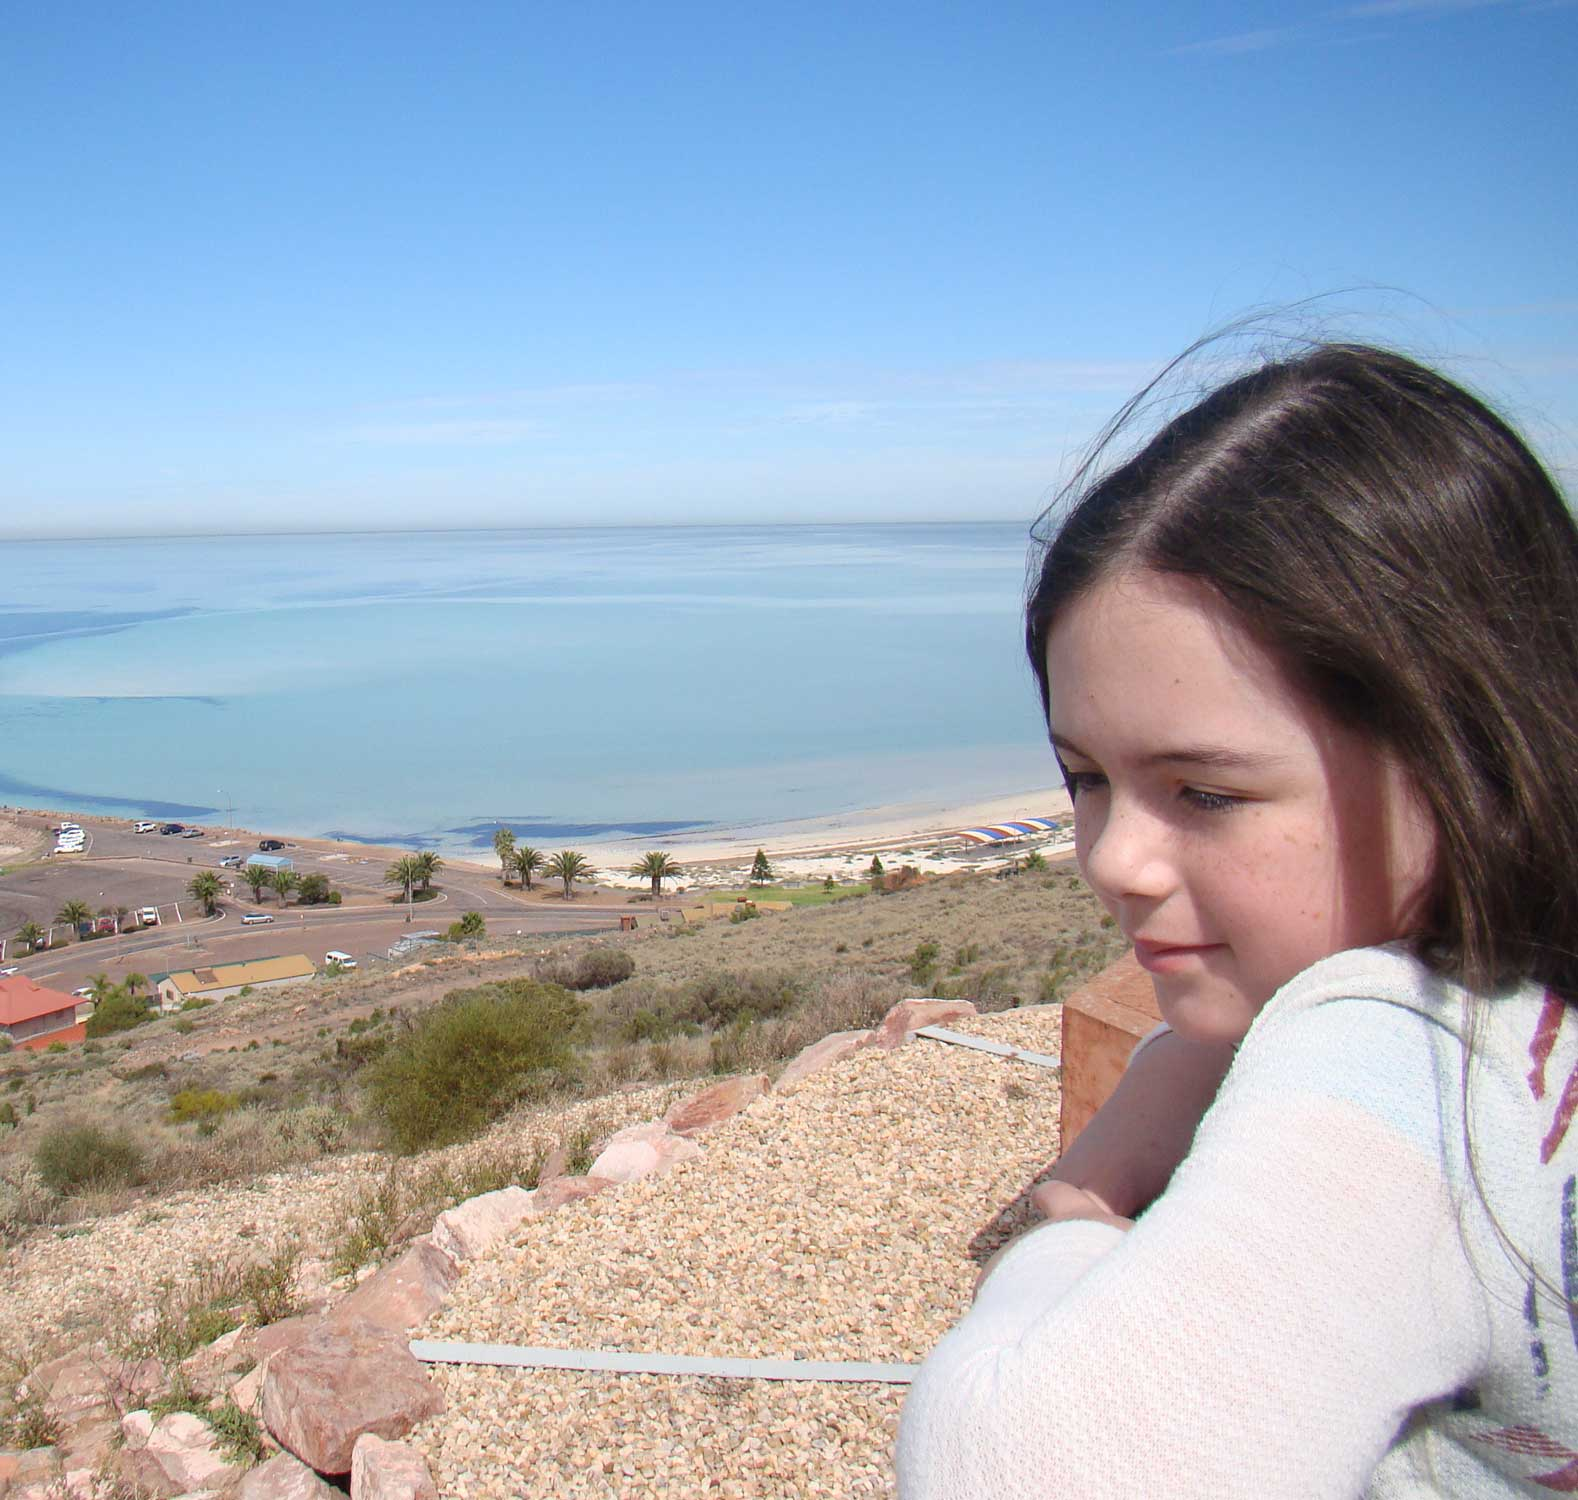 Tookii things to do with kids at Hummock Hill one of the outdoor activities for kids